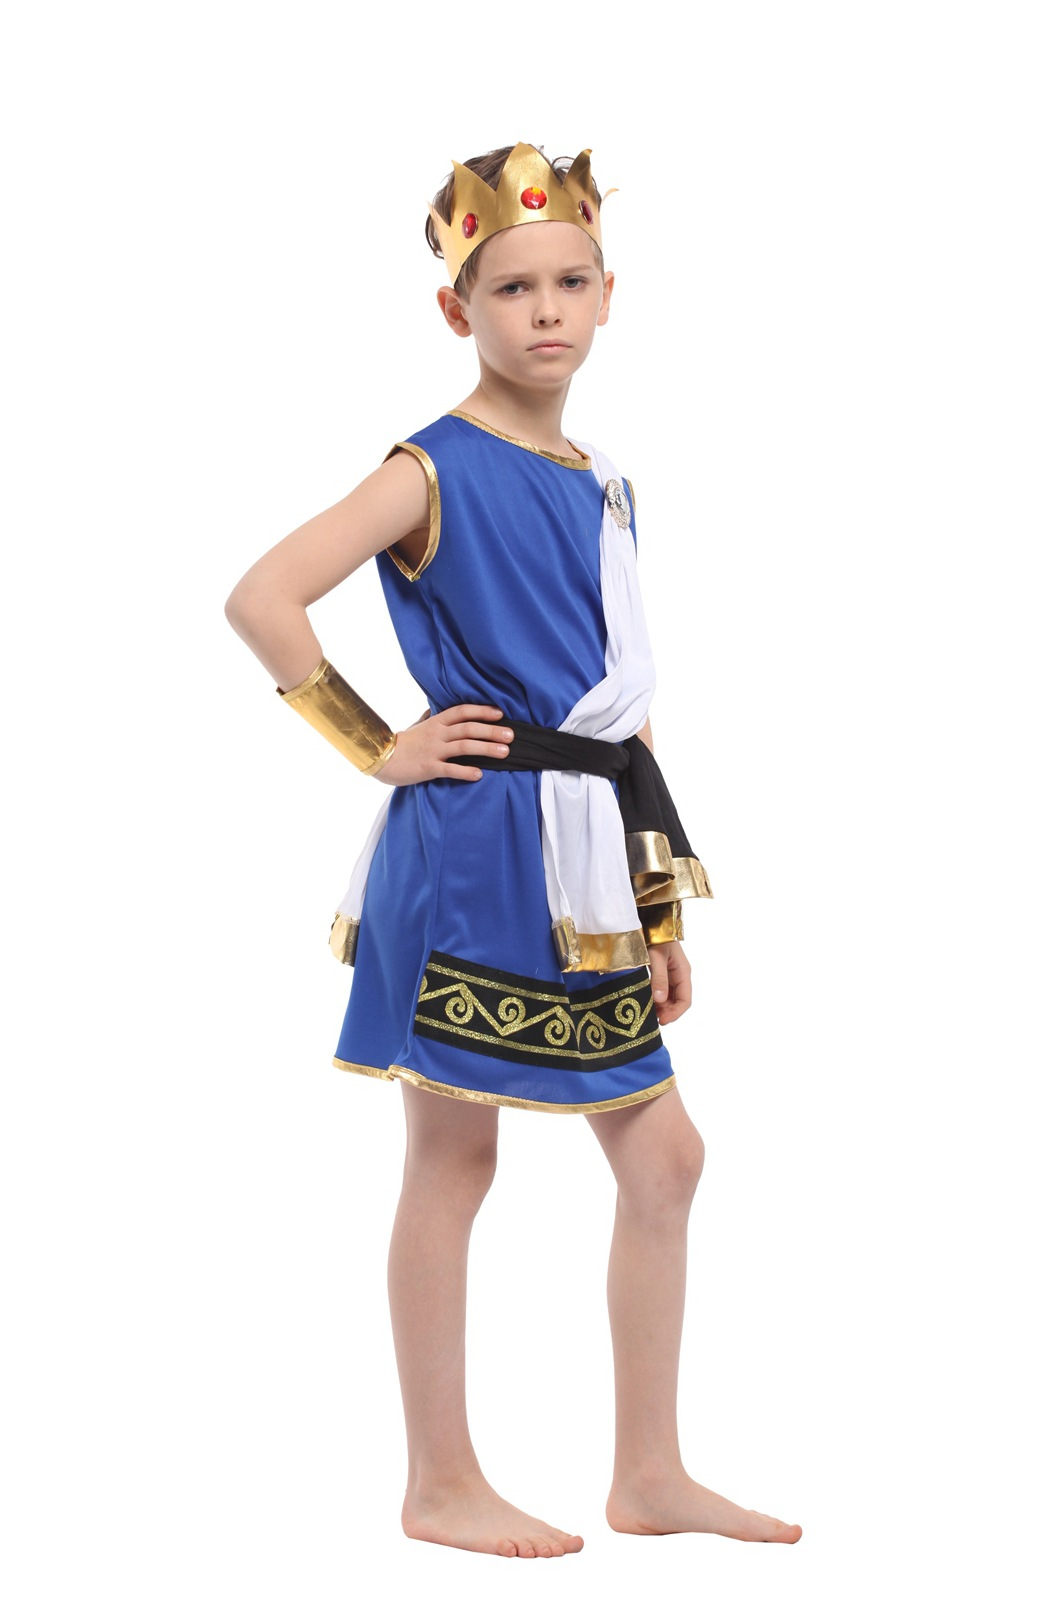 aliexpresscom buy kids halloween costume children egyptian uniform boy photography clothing zeus god uniforms boy role playing suit b 5156 from reliable - Egyptian Halloween Costumes For Kids